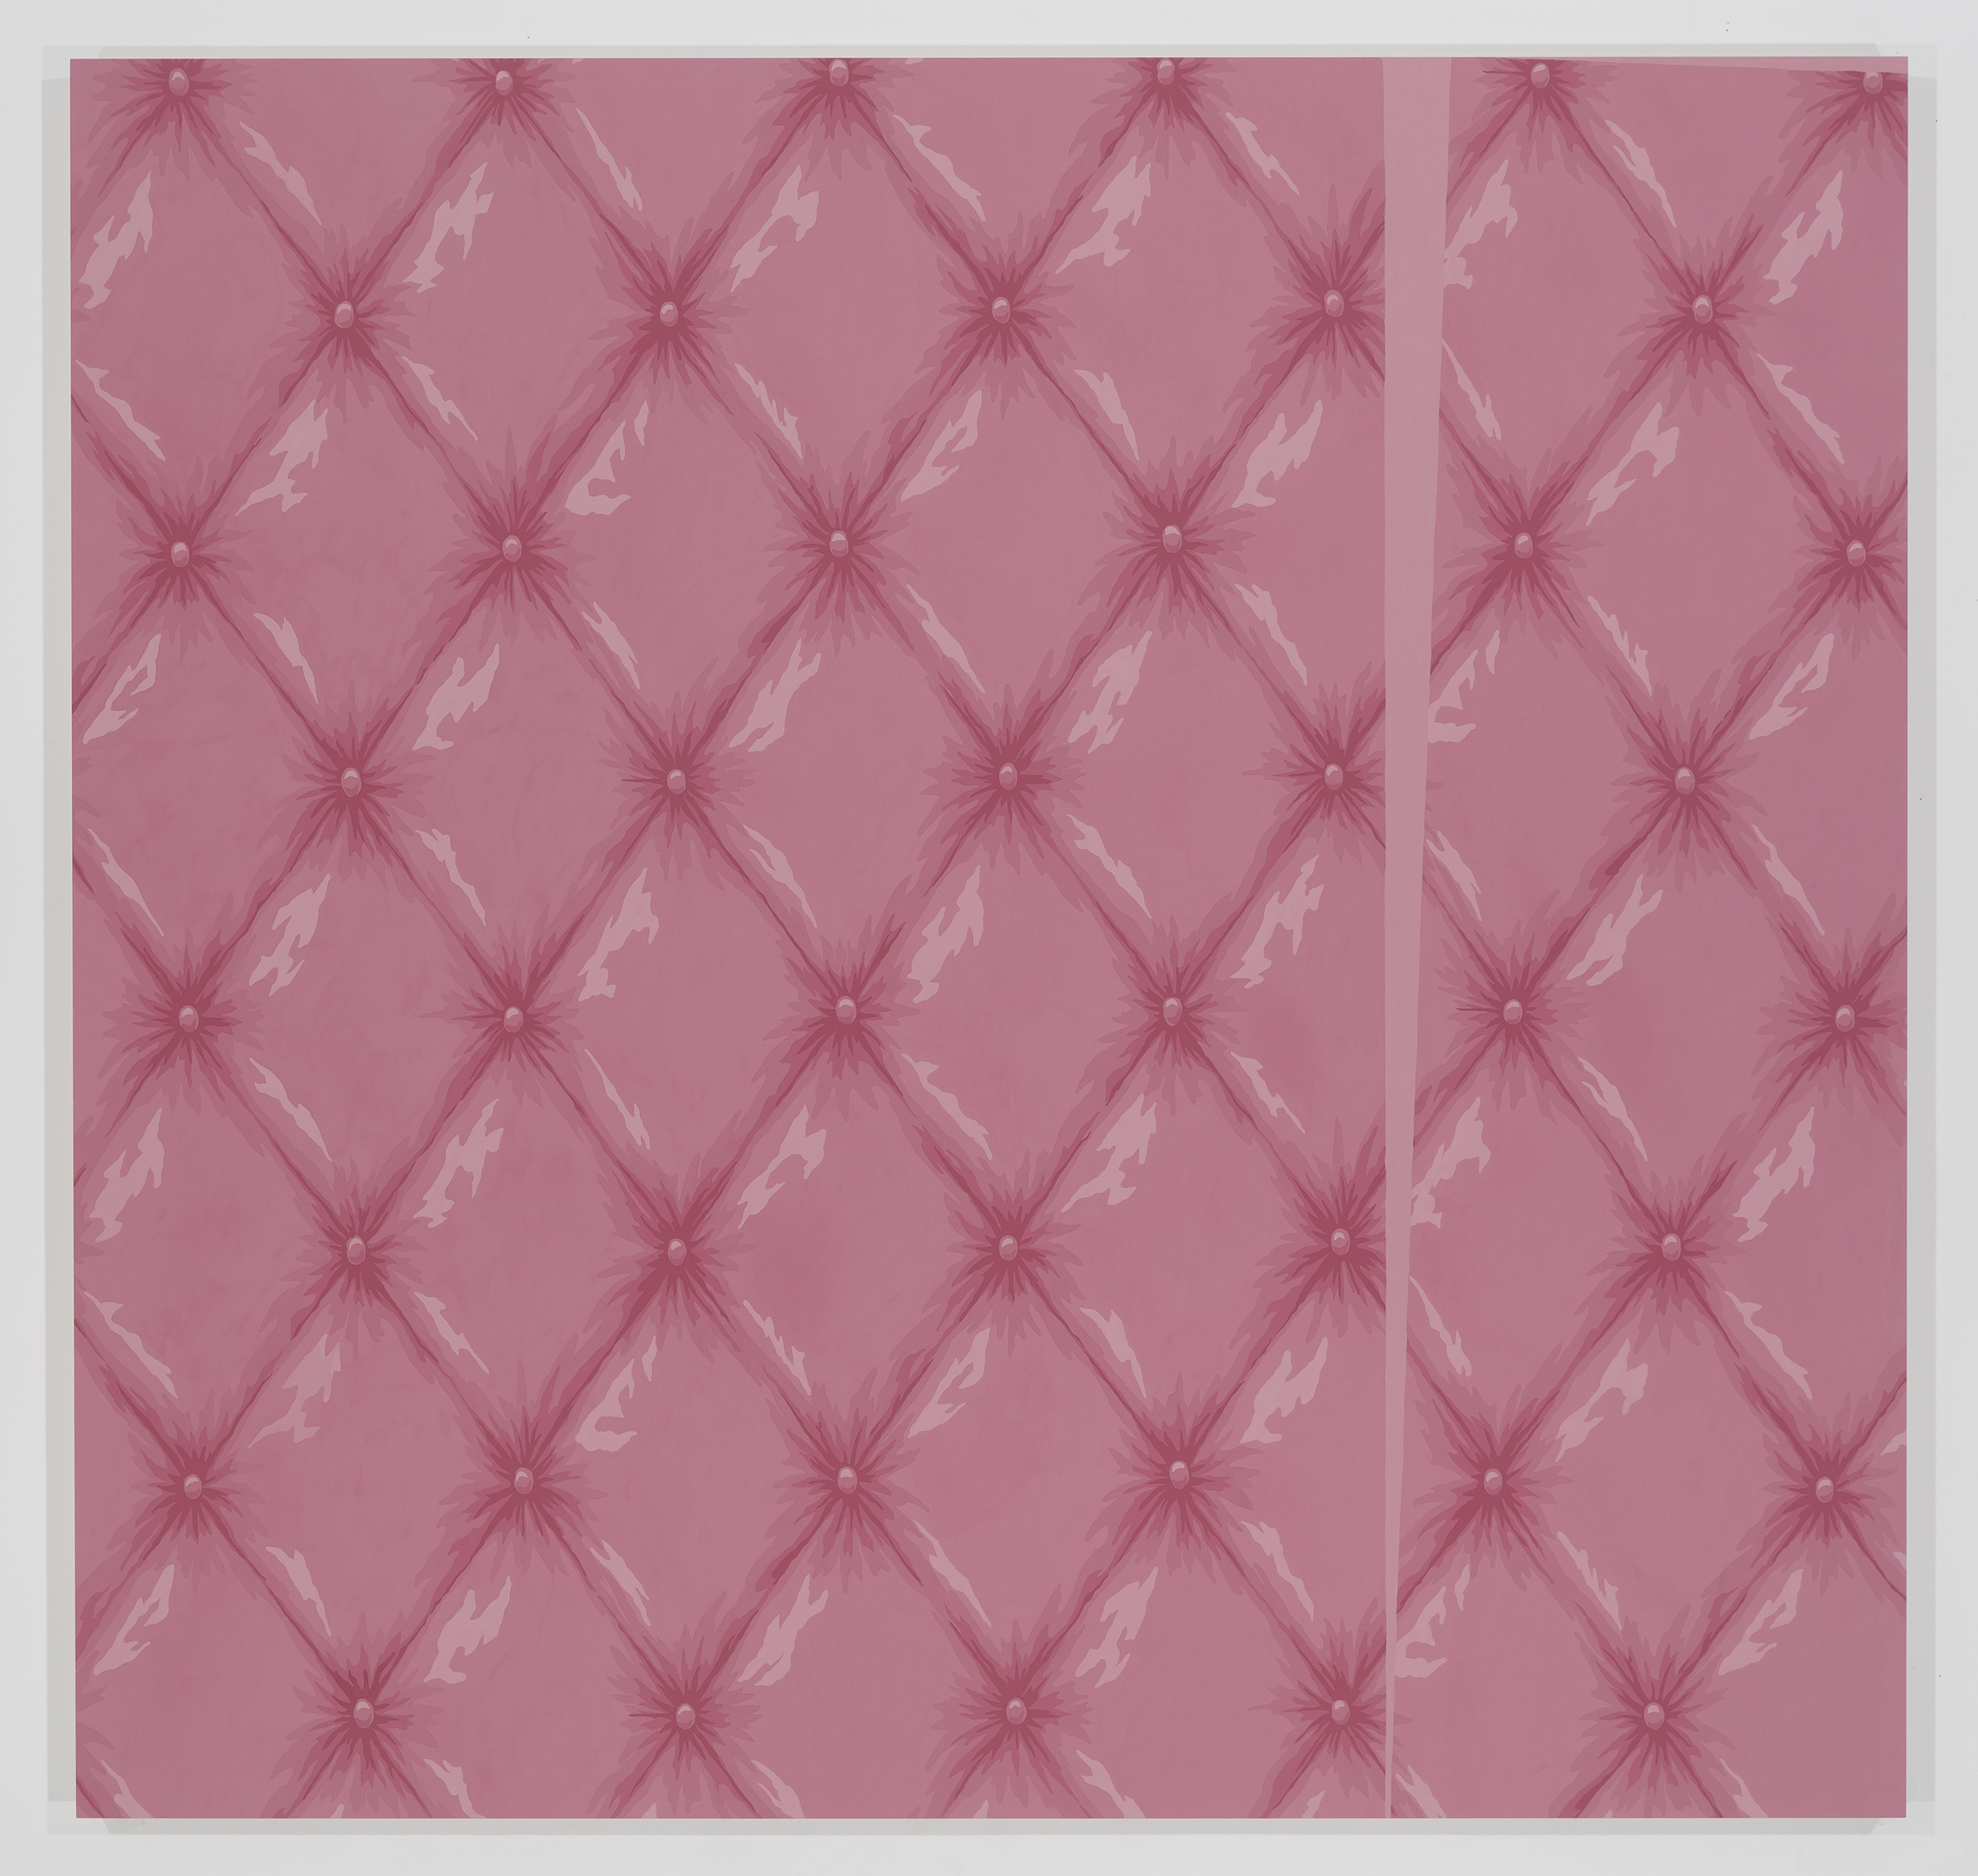 Untitled_Pink_Zip.jpg